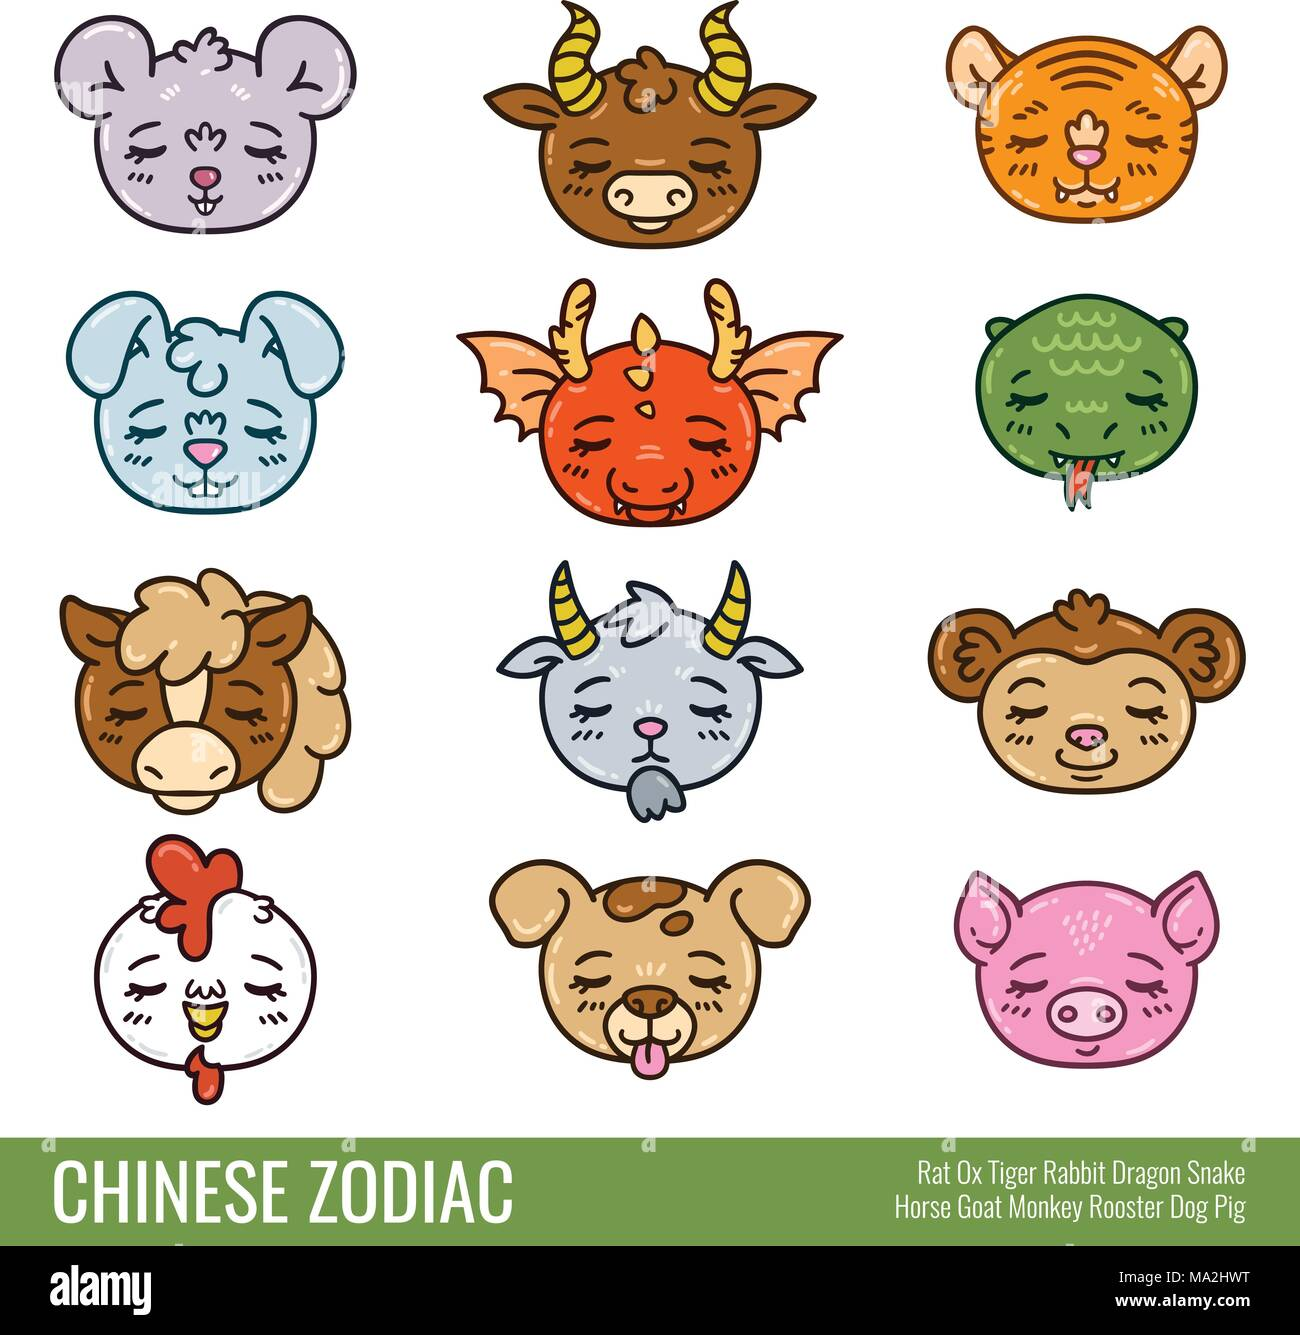 Image of: Toothless Cute Chinese Zodiac Cute Animals Horoscope Isolated Objects On White Background Vector Alamy Cute Animals Stock Vector Images Alamy